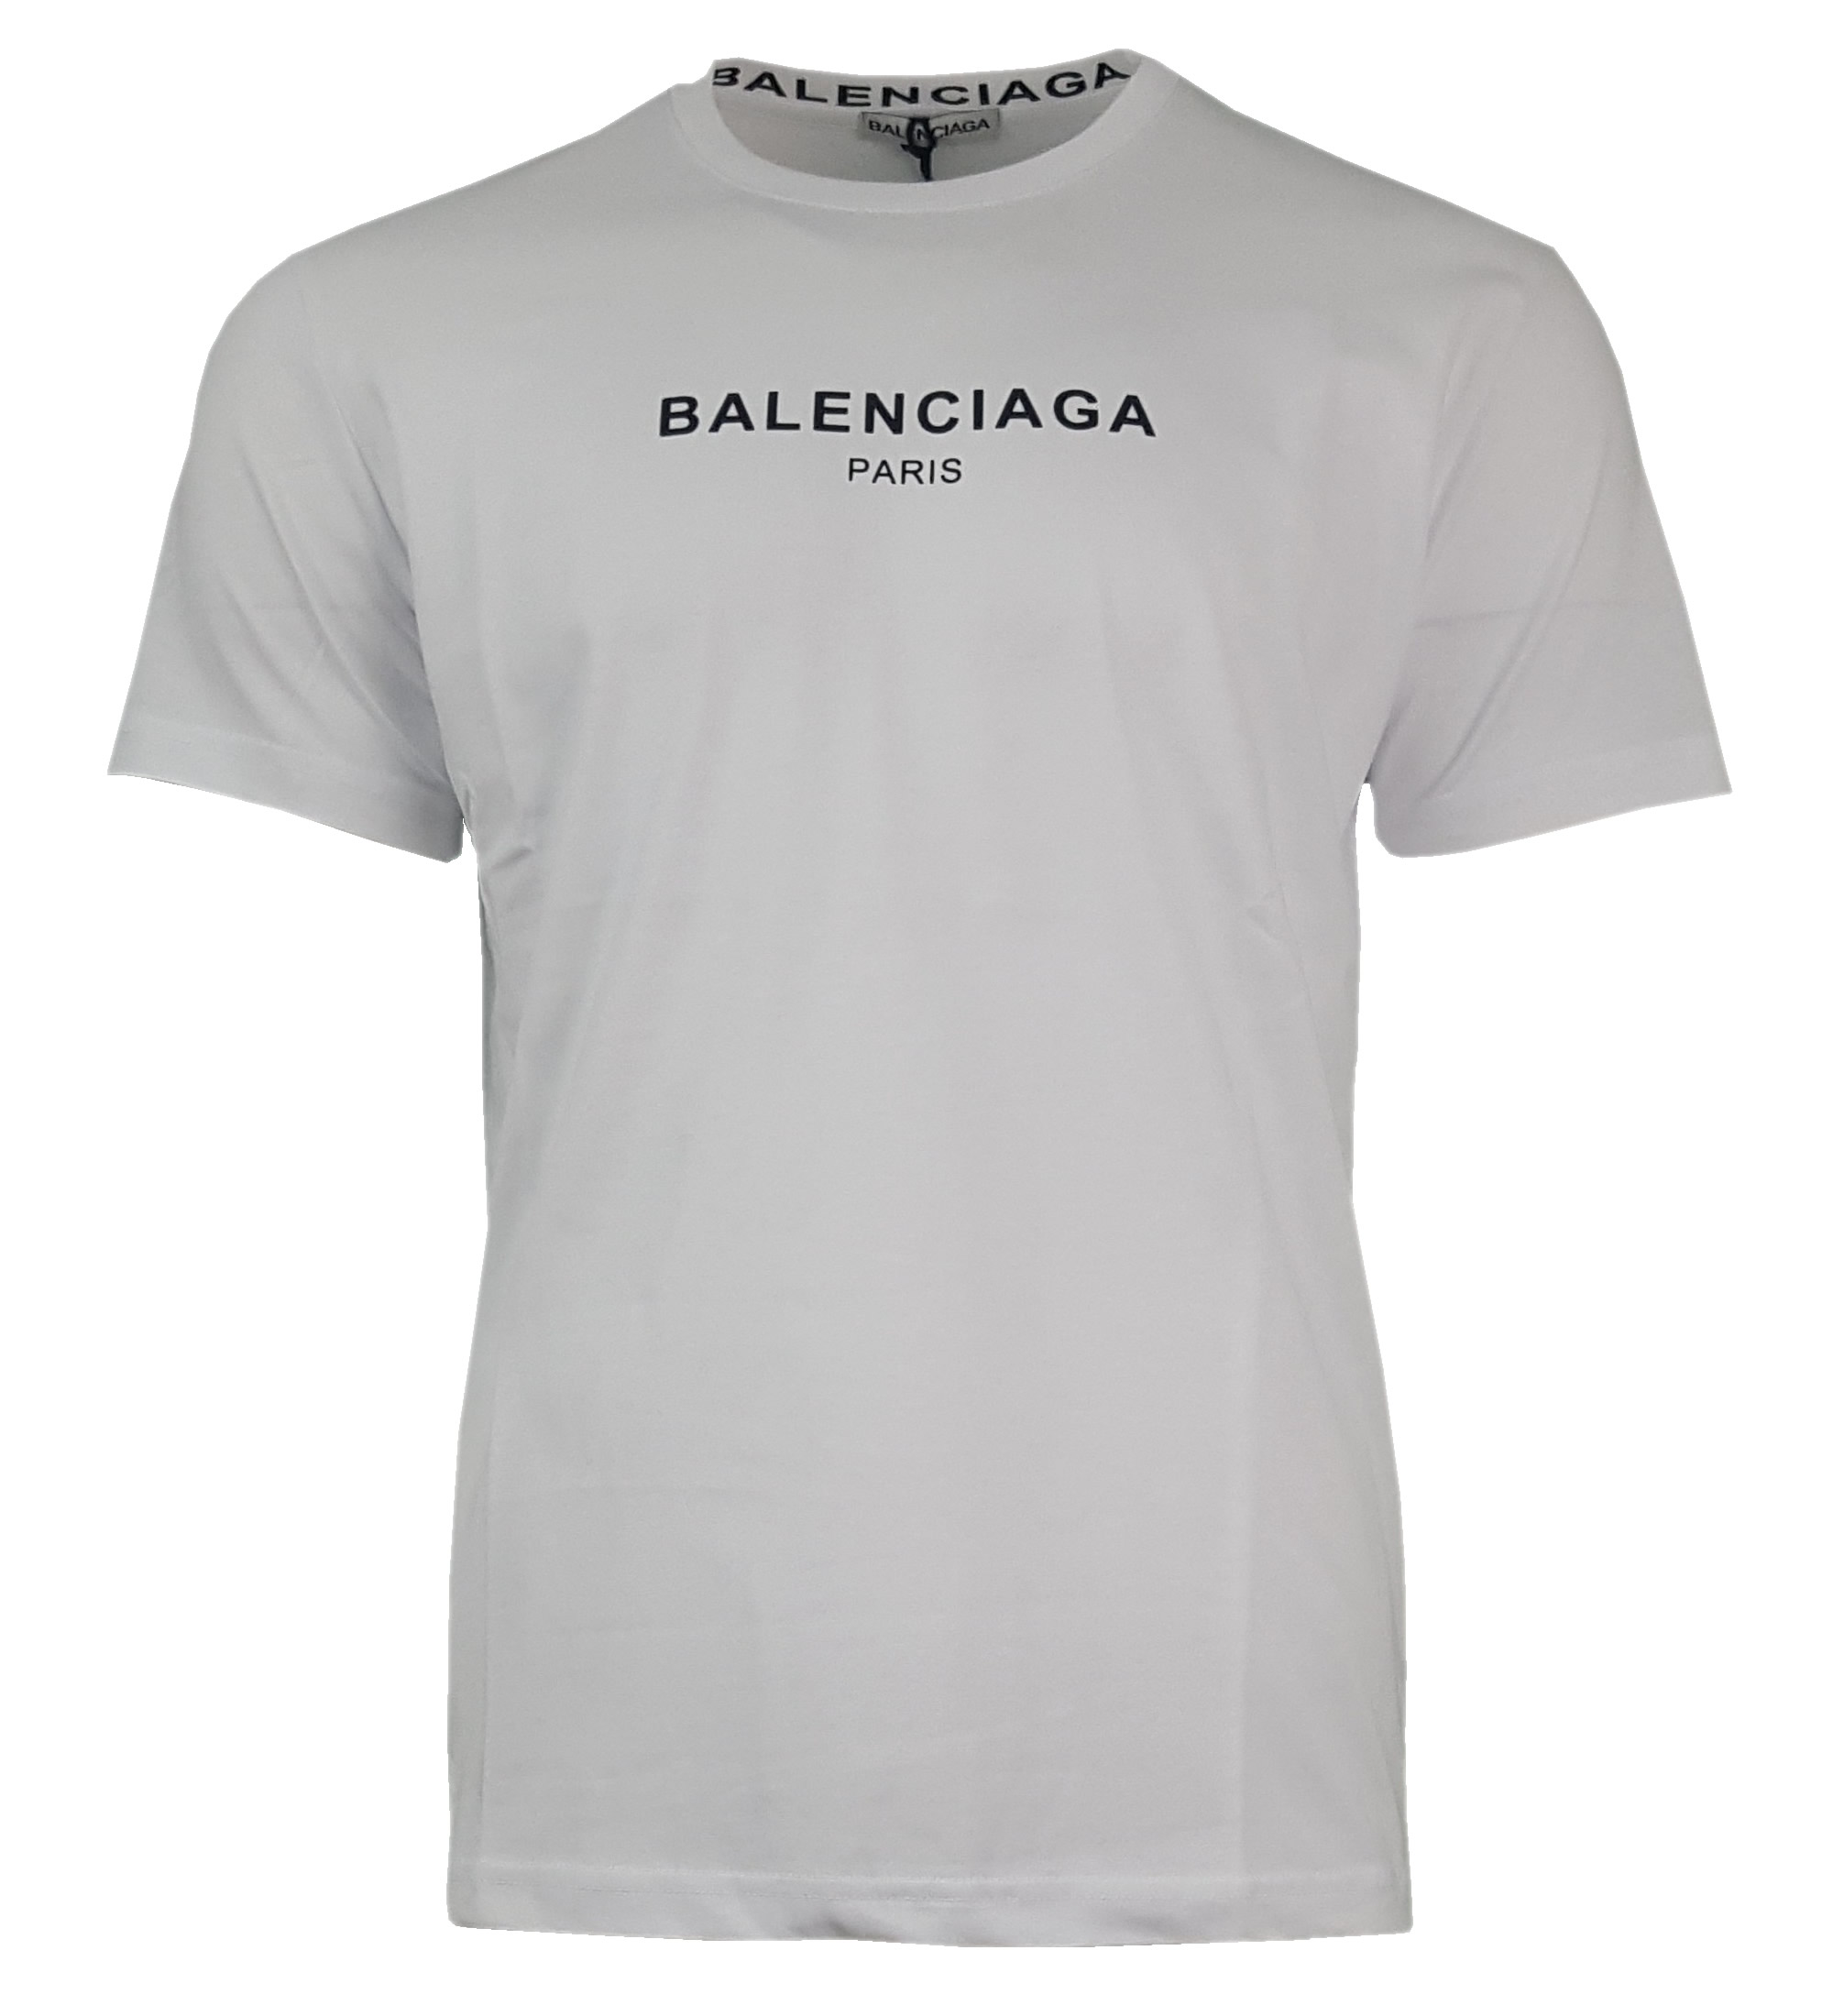 219c83094 Balenciaga Short Sleeve Crew T Shirt. Paris Chest Print in White ...